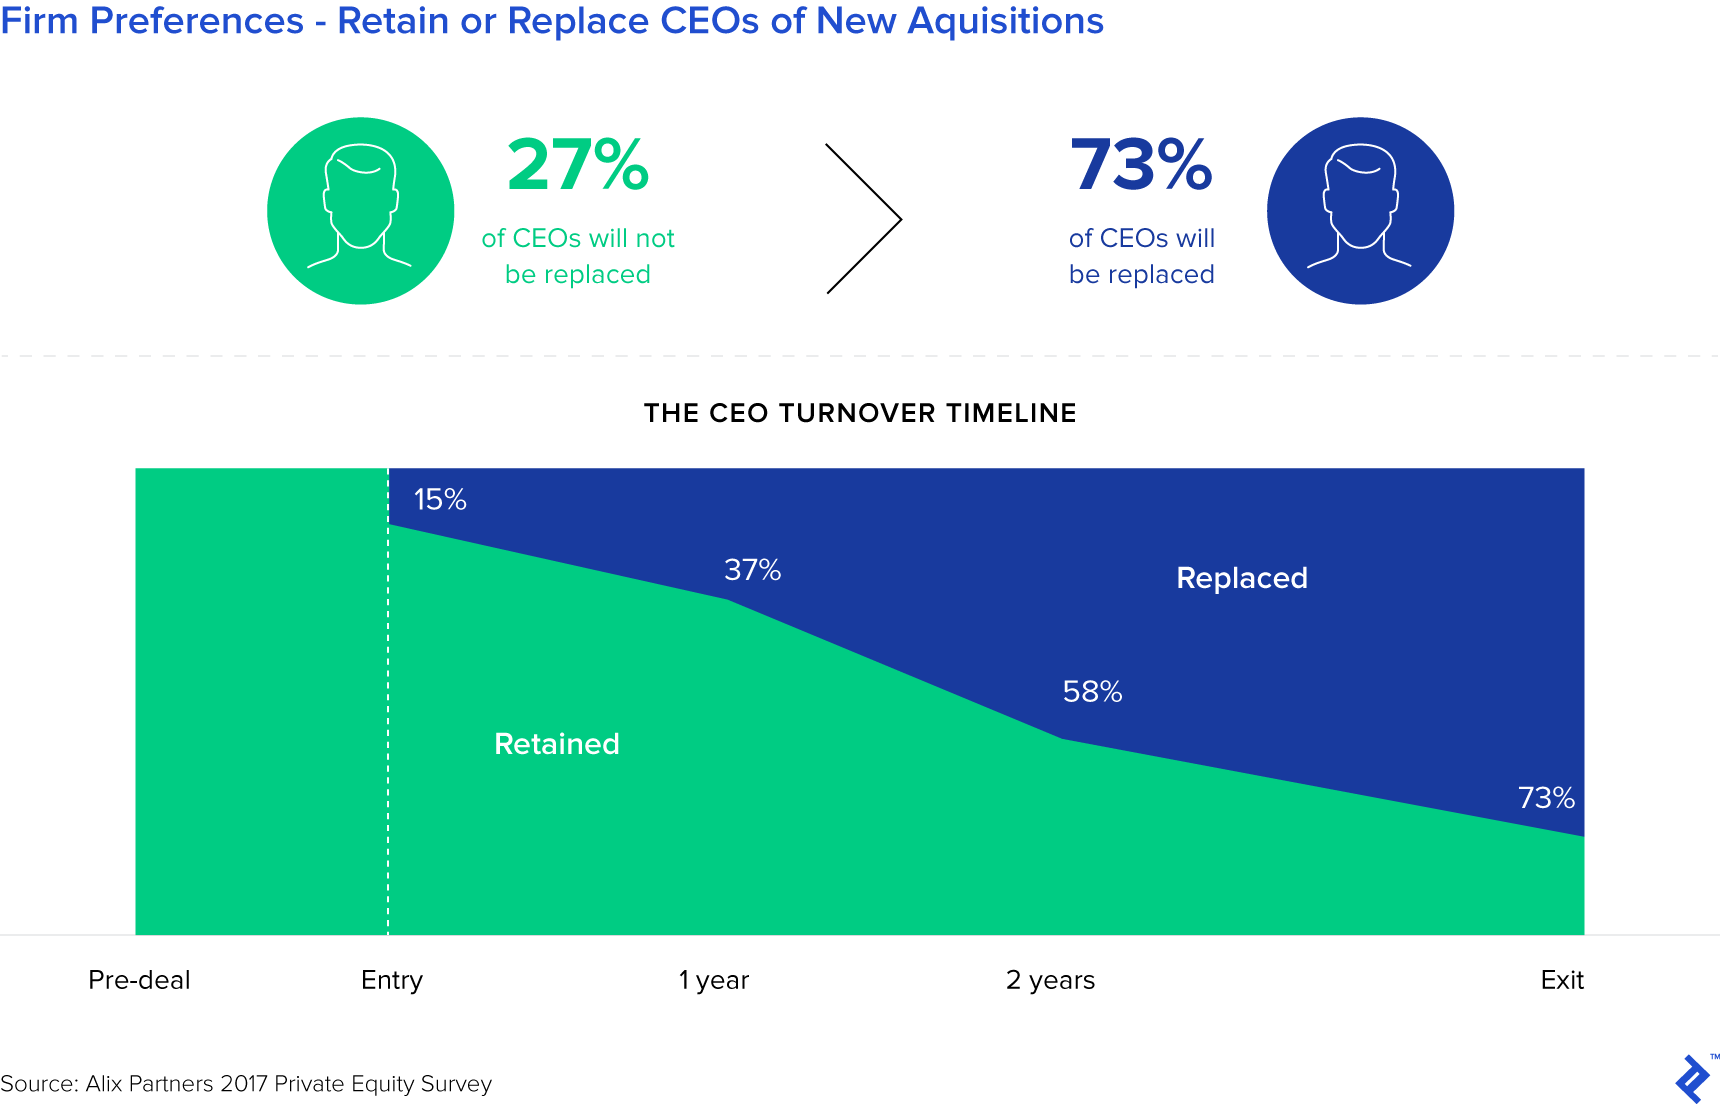 Firm Preferences - Retain or Replace CEOs of New Acquisitions